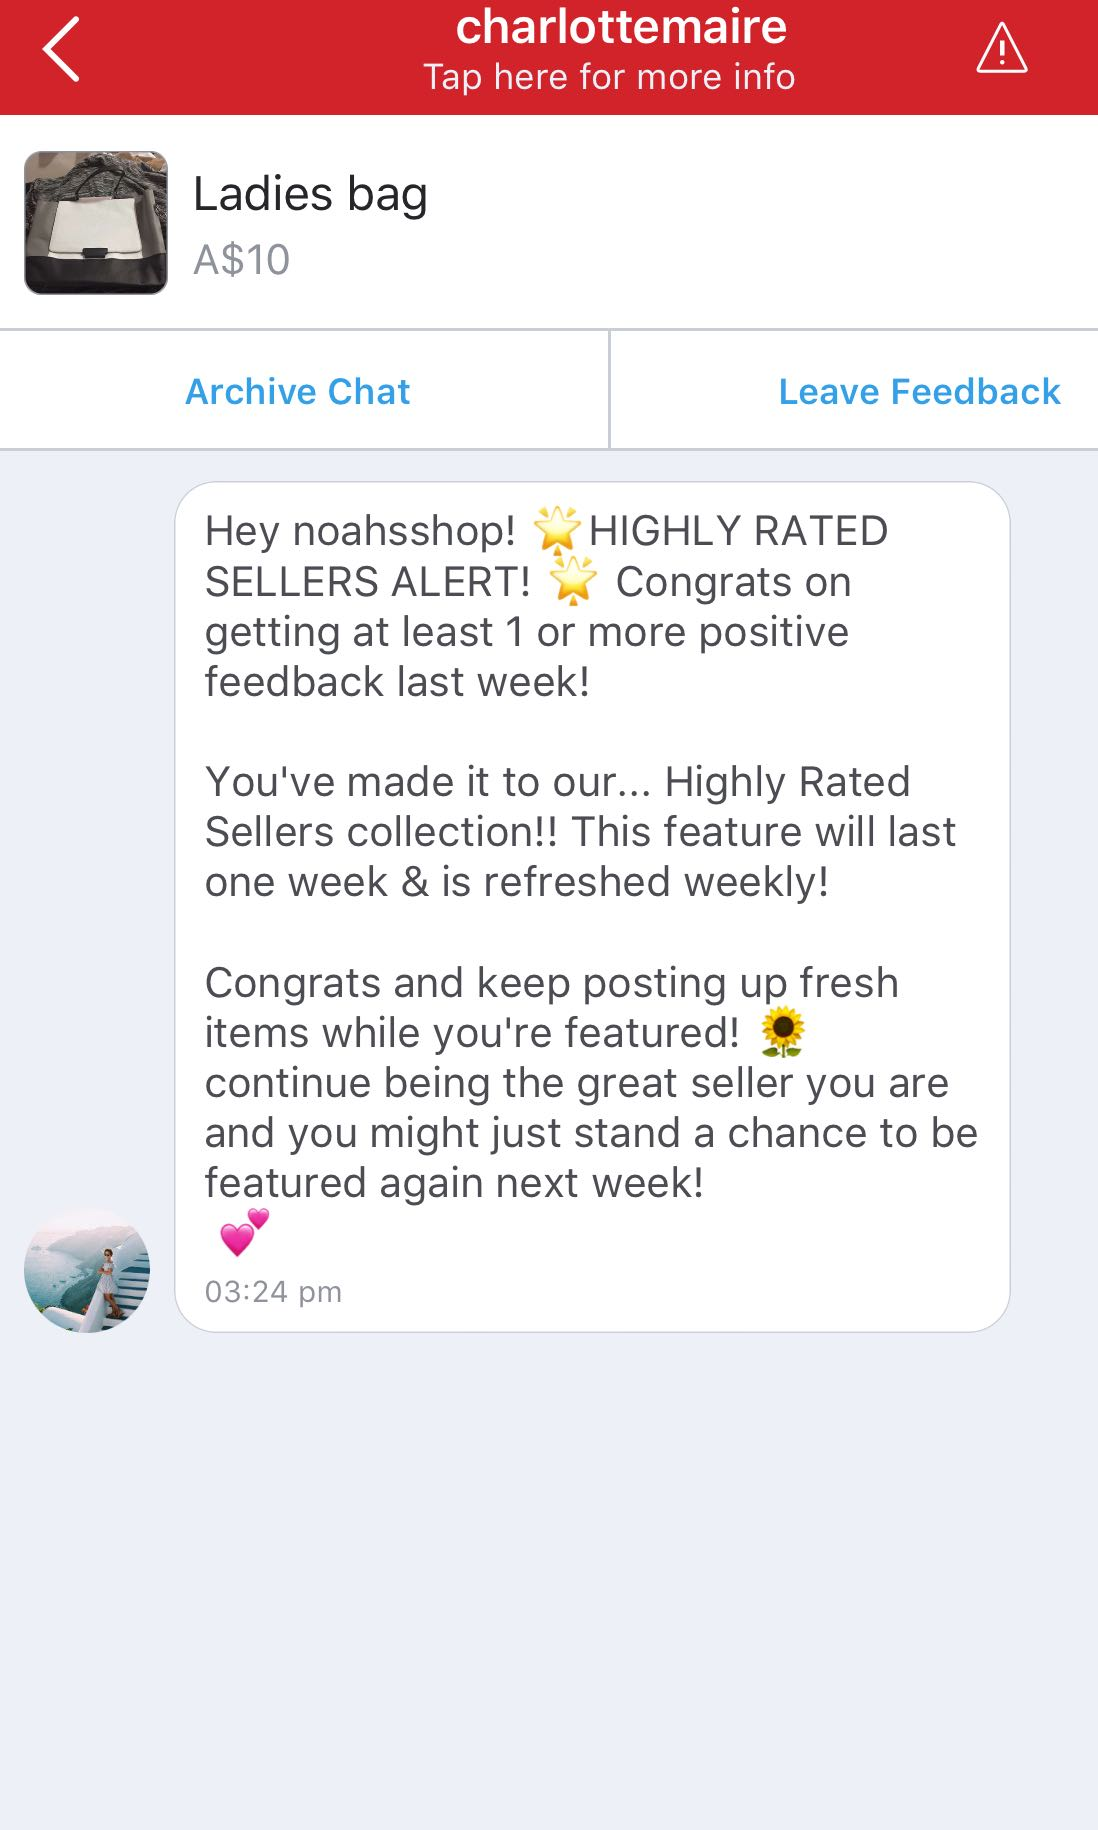 HIGHLY RATED SELLER !!